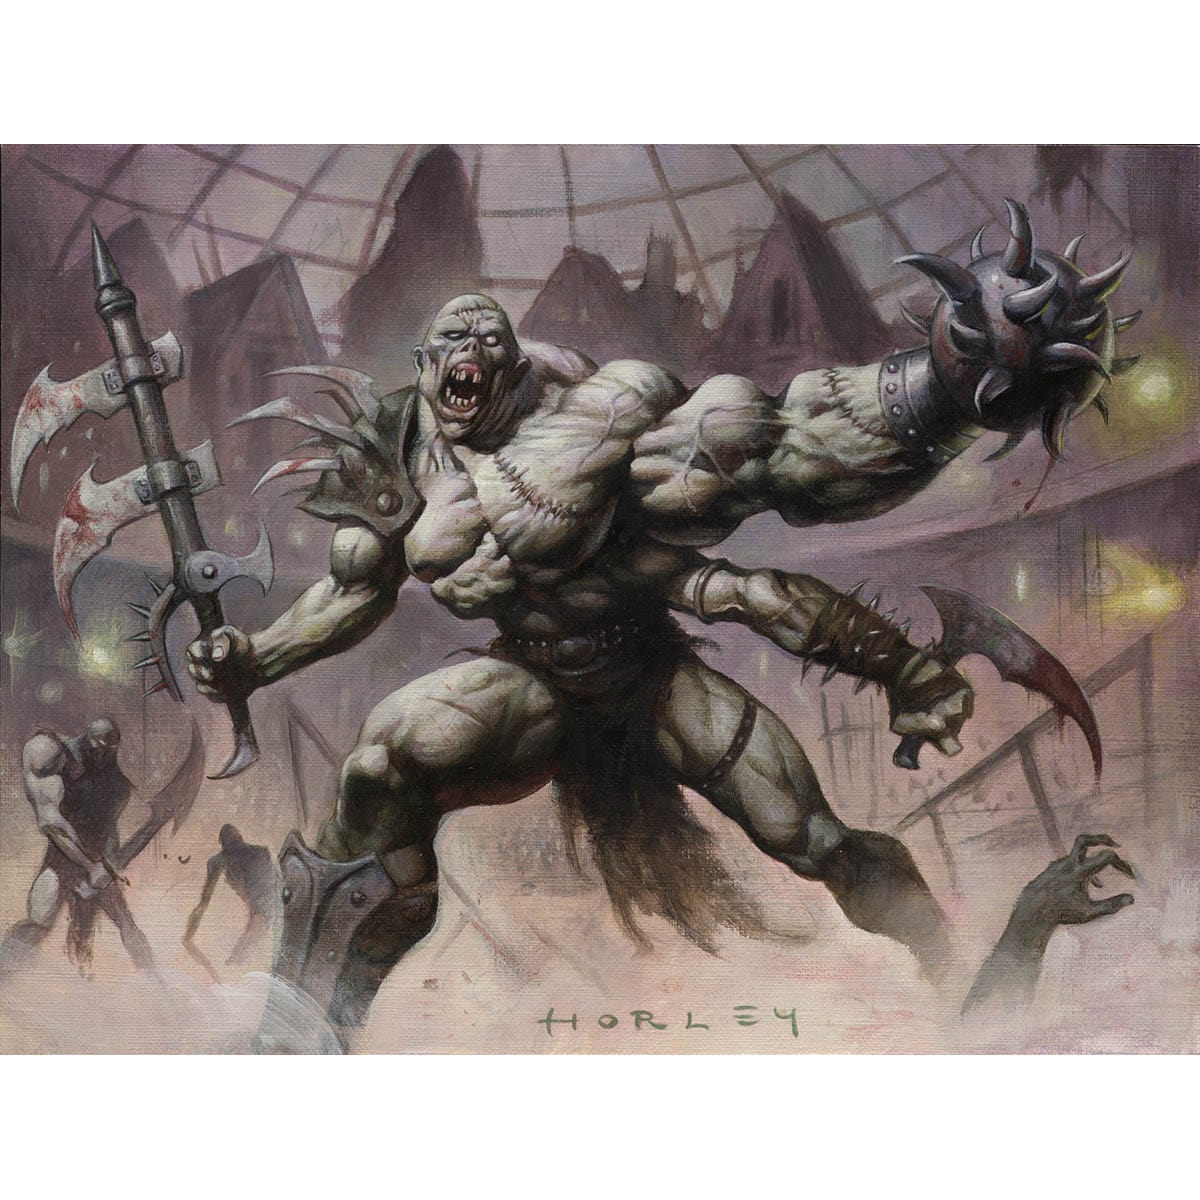 Vengeful Dead Print - Print - Original Magic Art - Accessories for Magic the Gathering and other card games